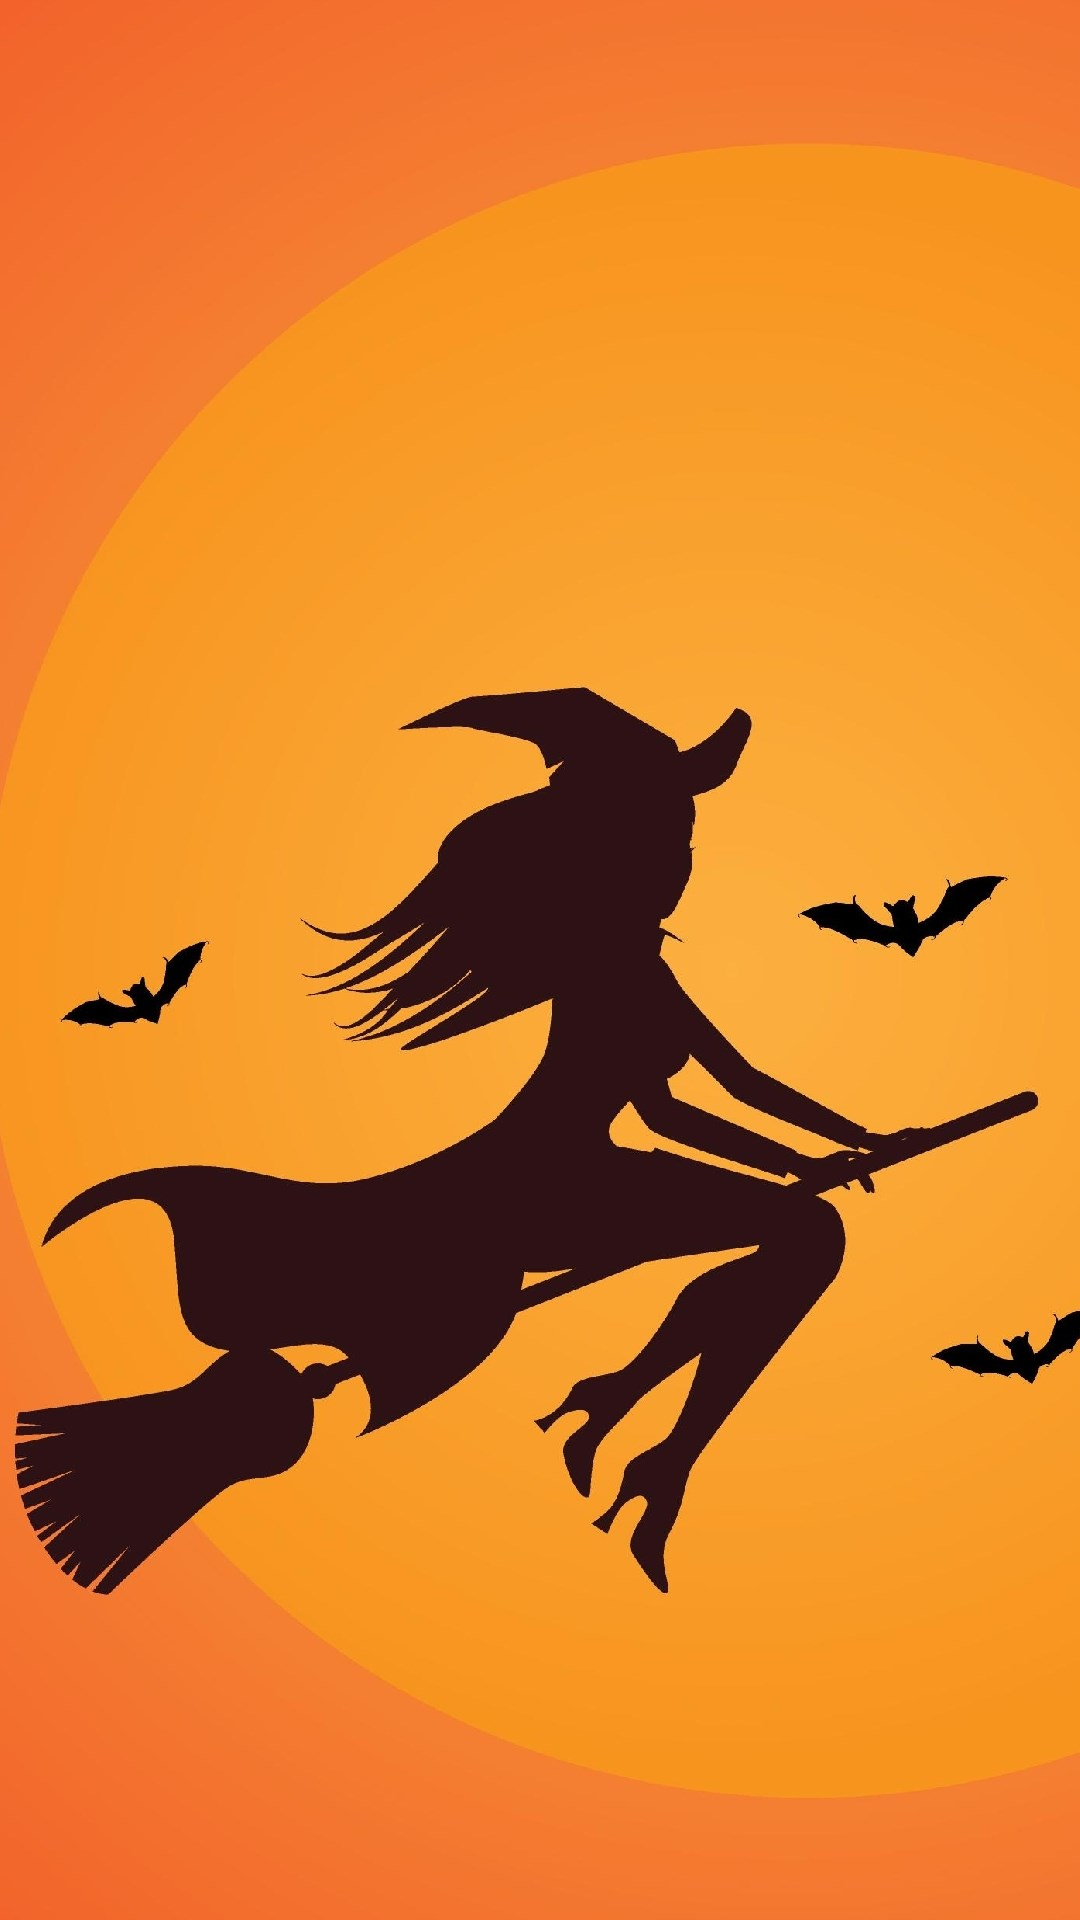 free-hd-halloween-iphone-wallpaper-backgrounds